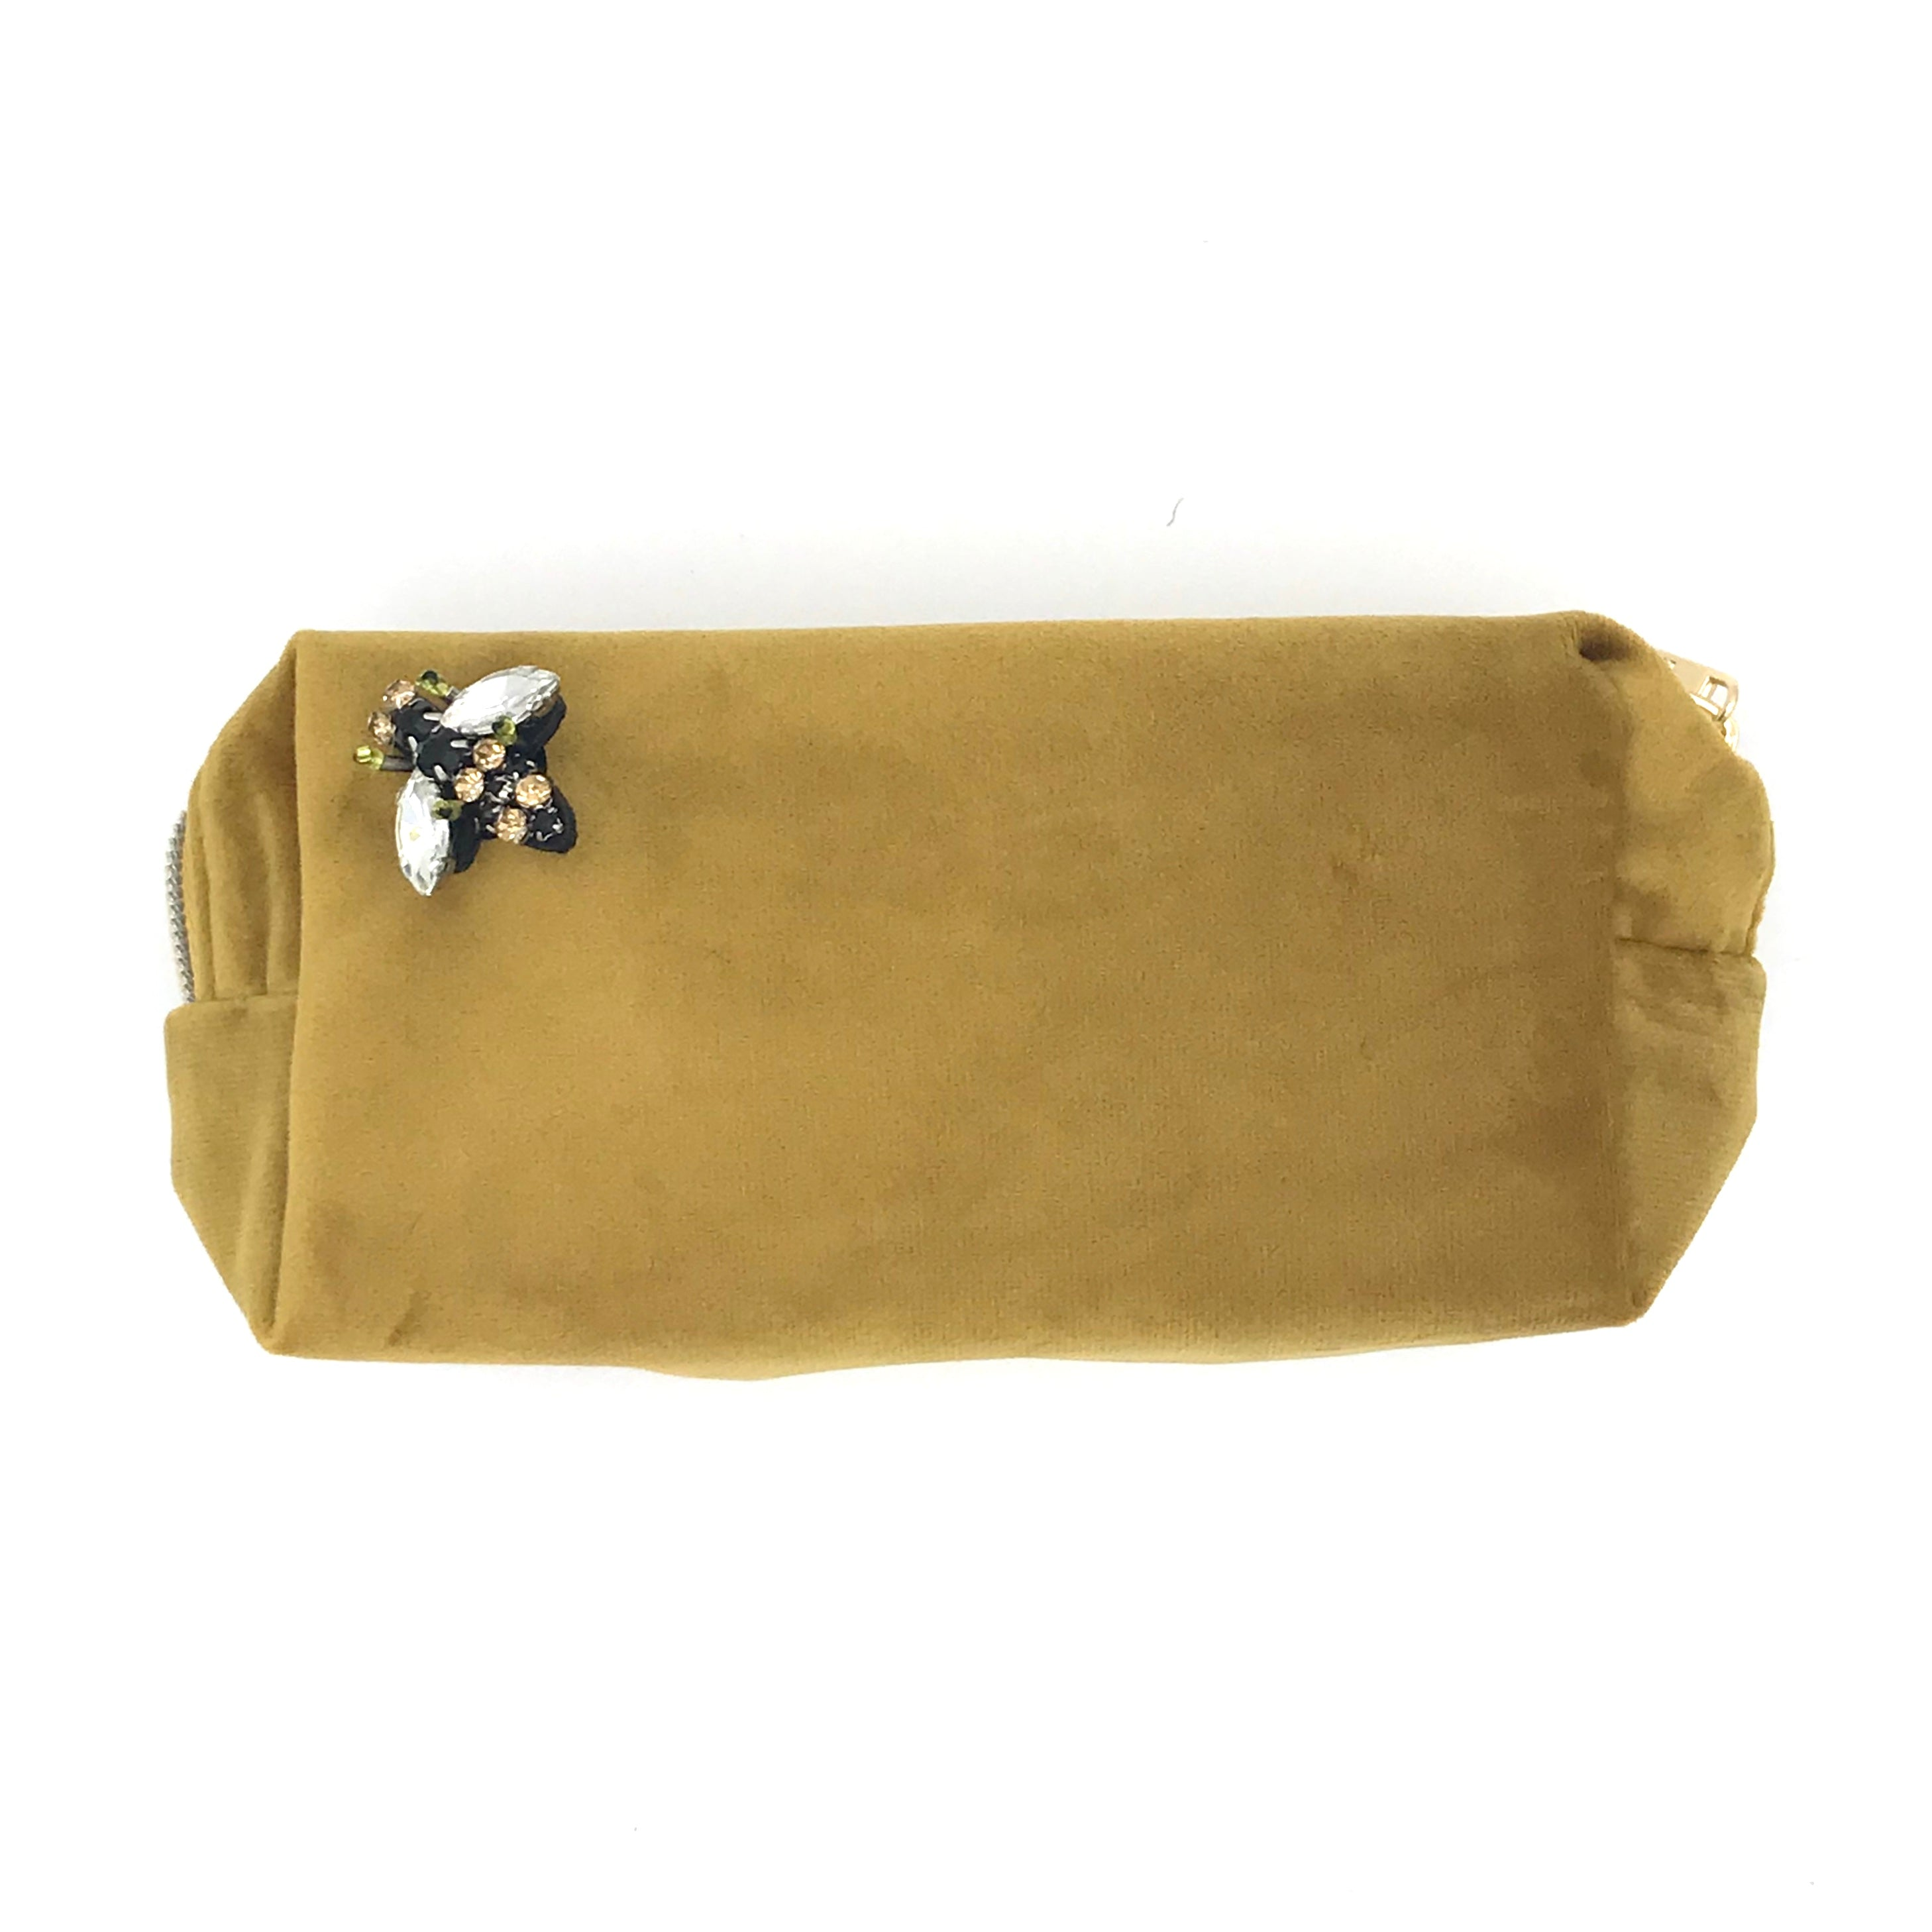 Velvet make-up bag in gold with a queen bee pin